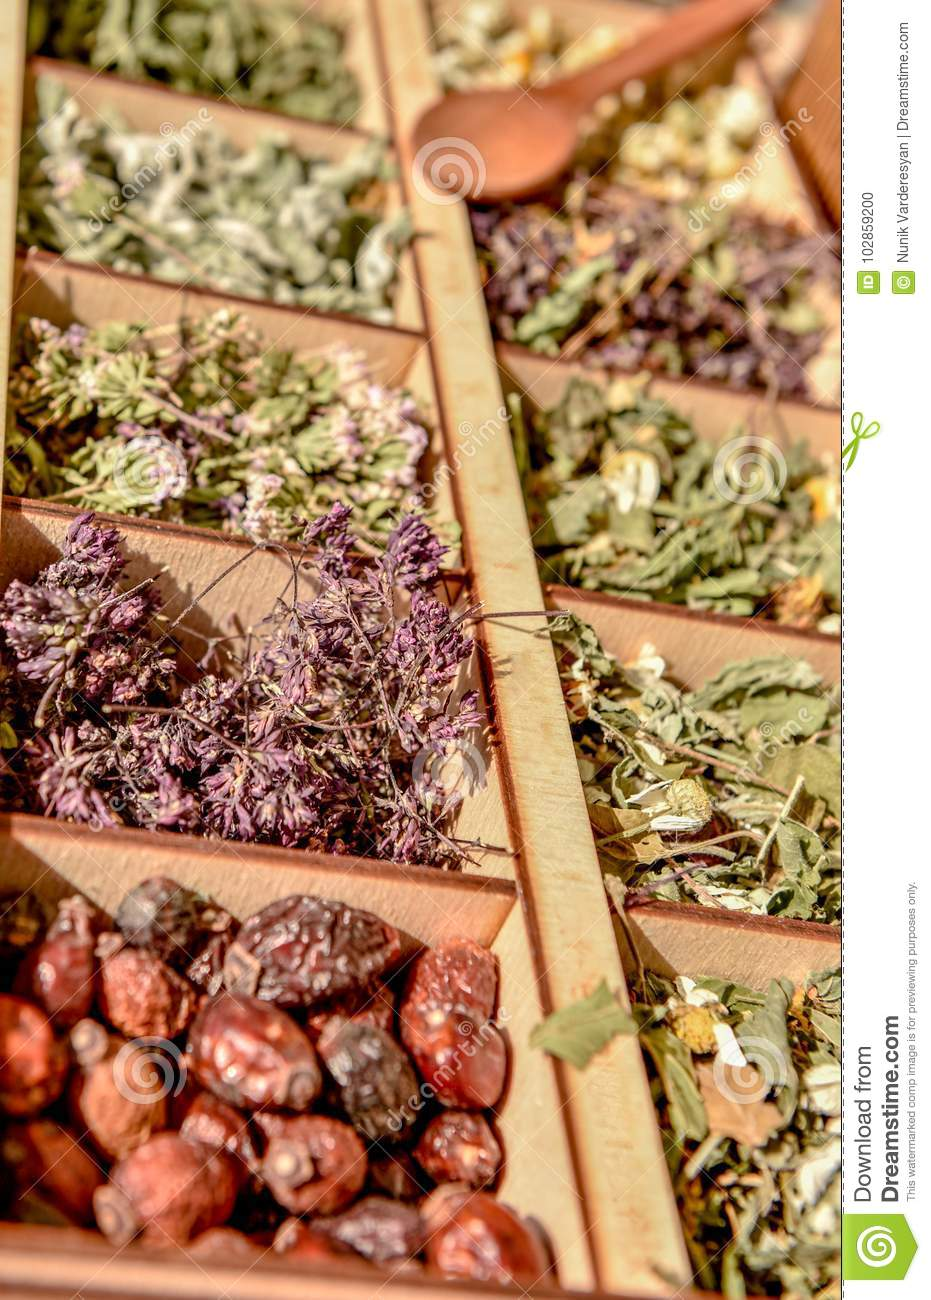 Herbs for tea . Herbs and tea collection .